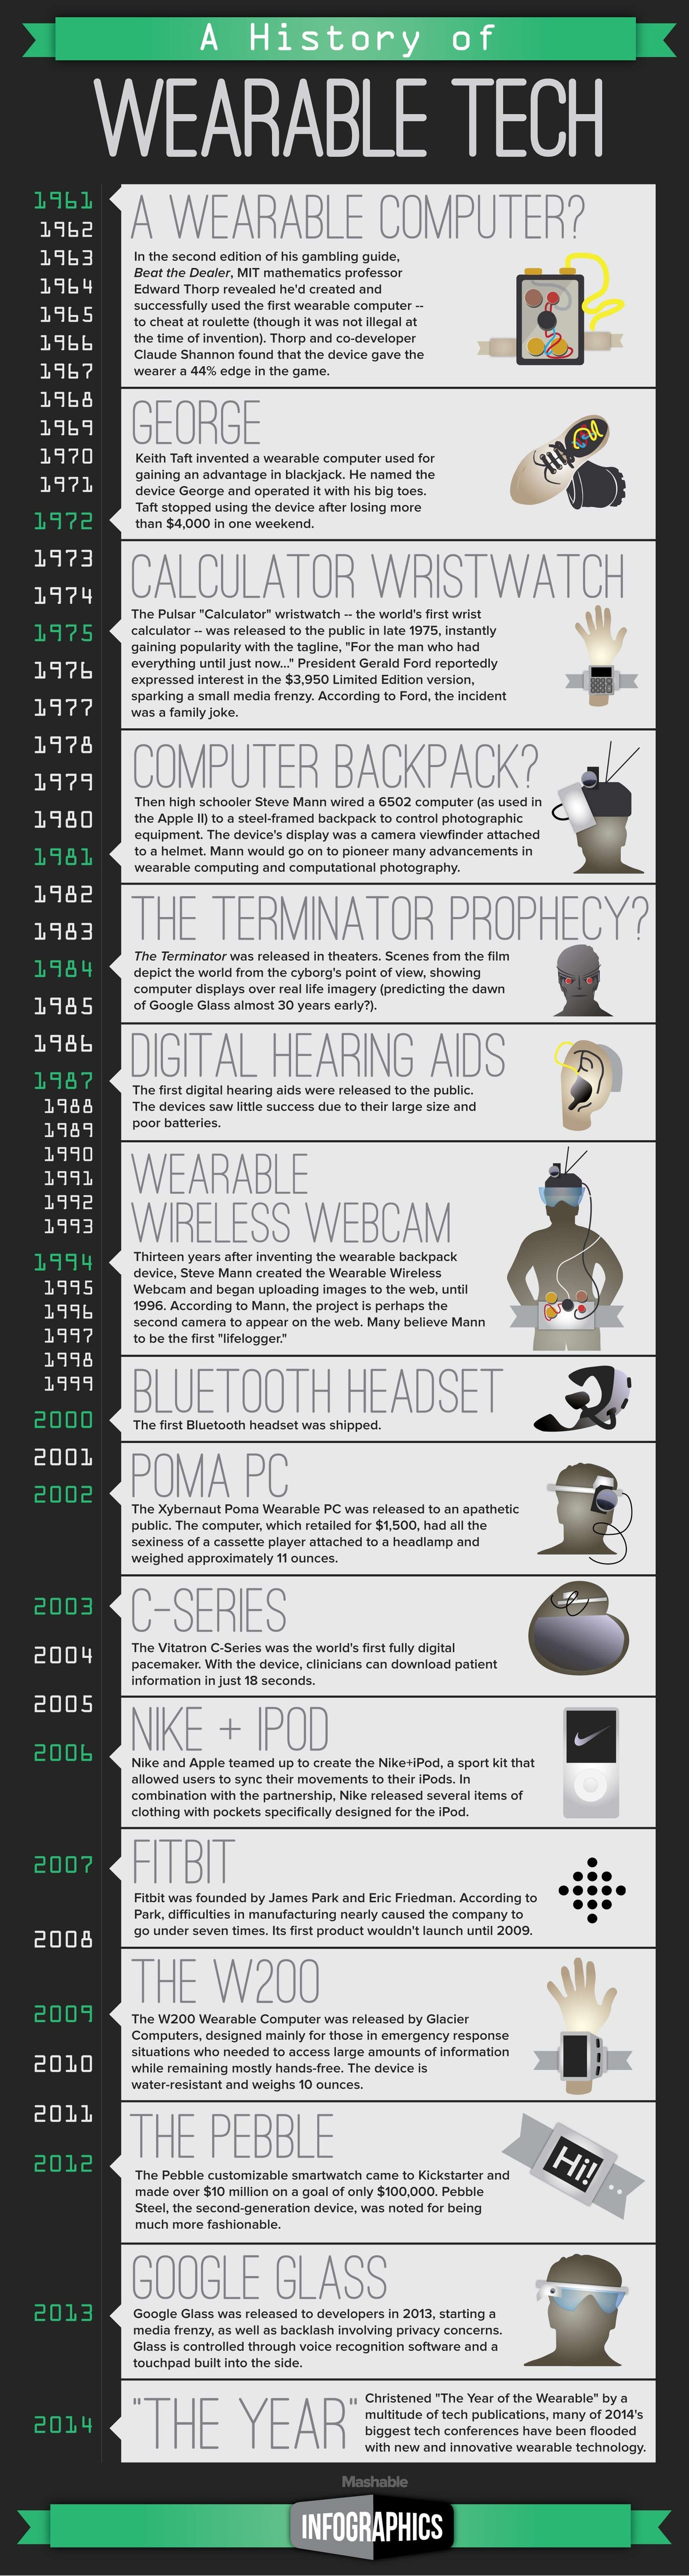 Wearable Devices History {Infographic}